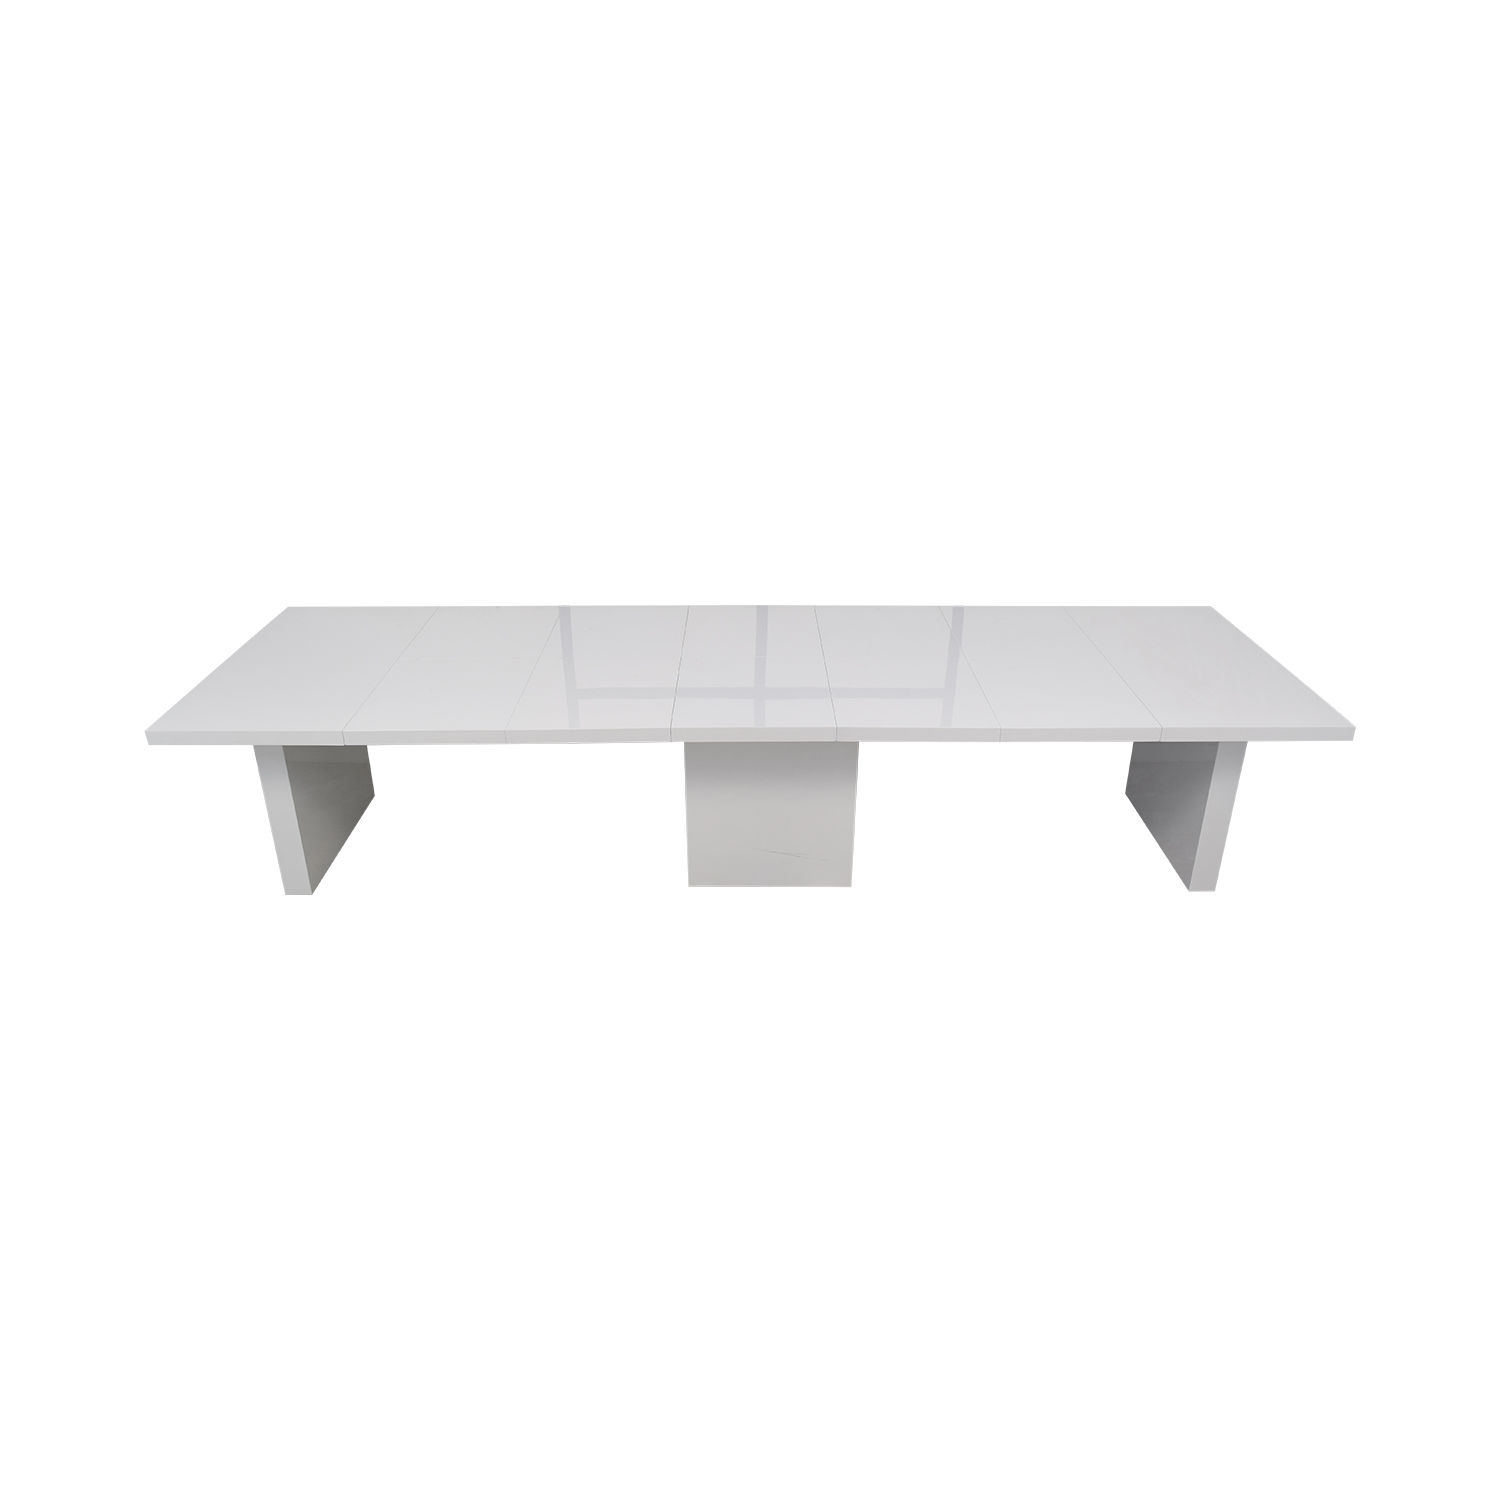 Orren Ellis Orren Ellis Stotfold White Extendable Table white